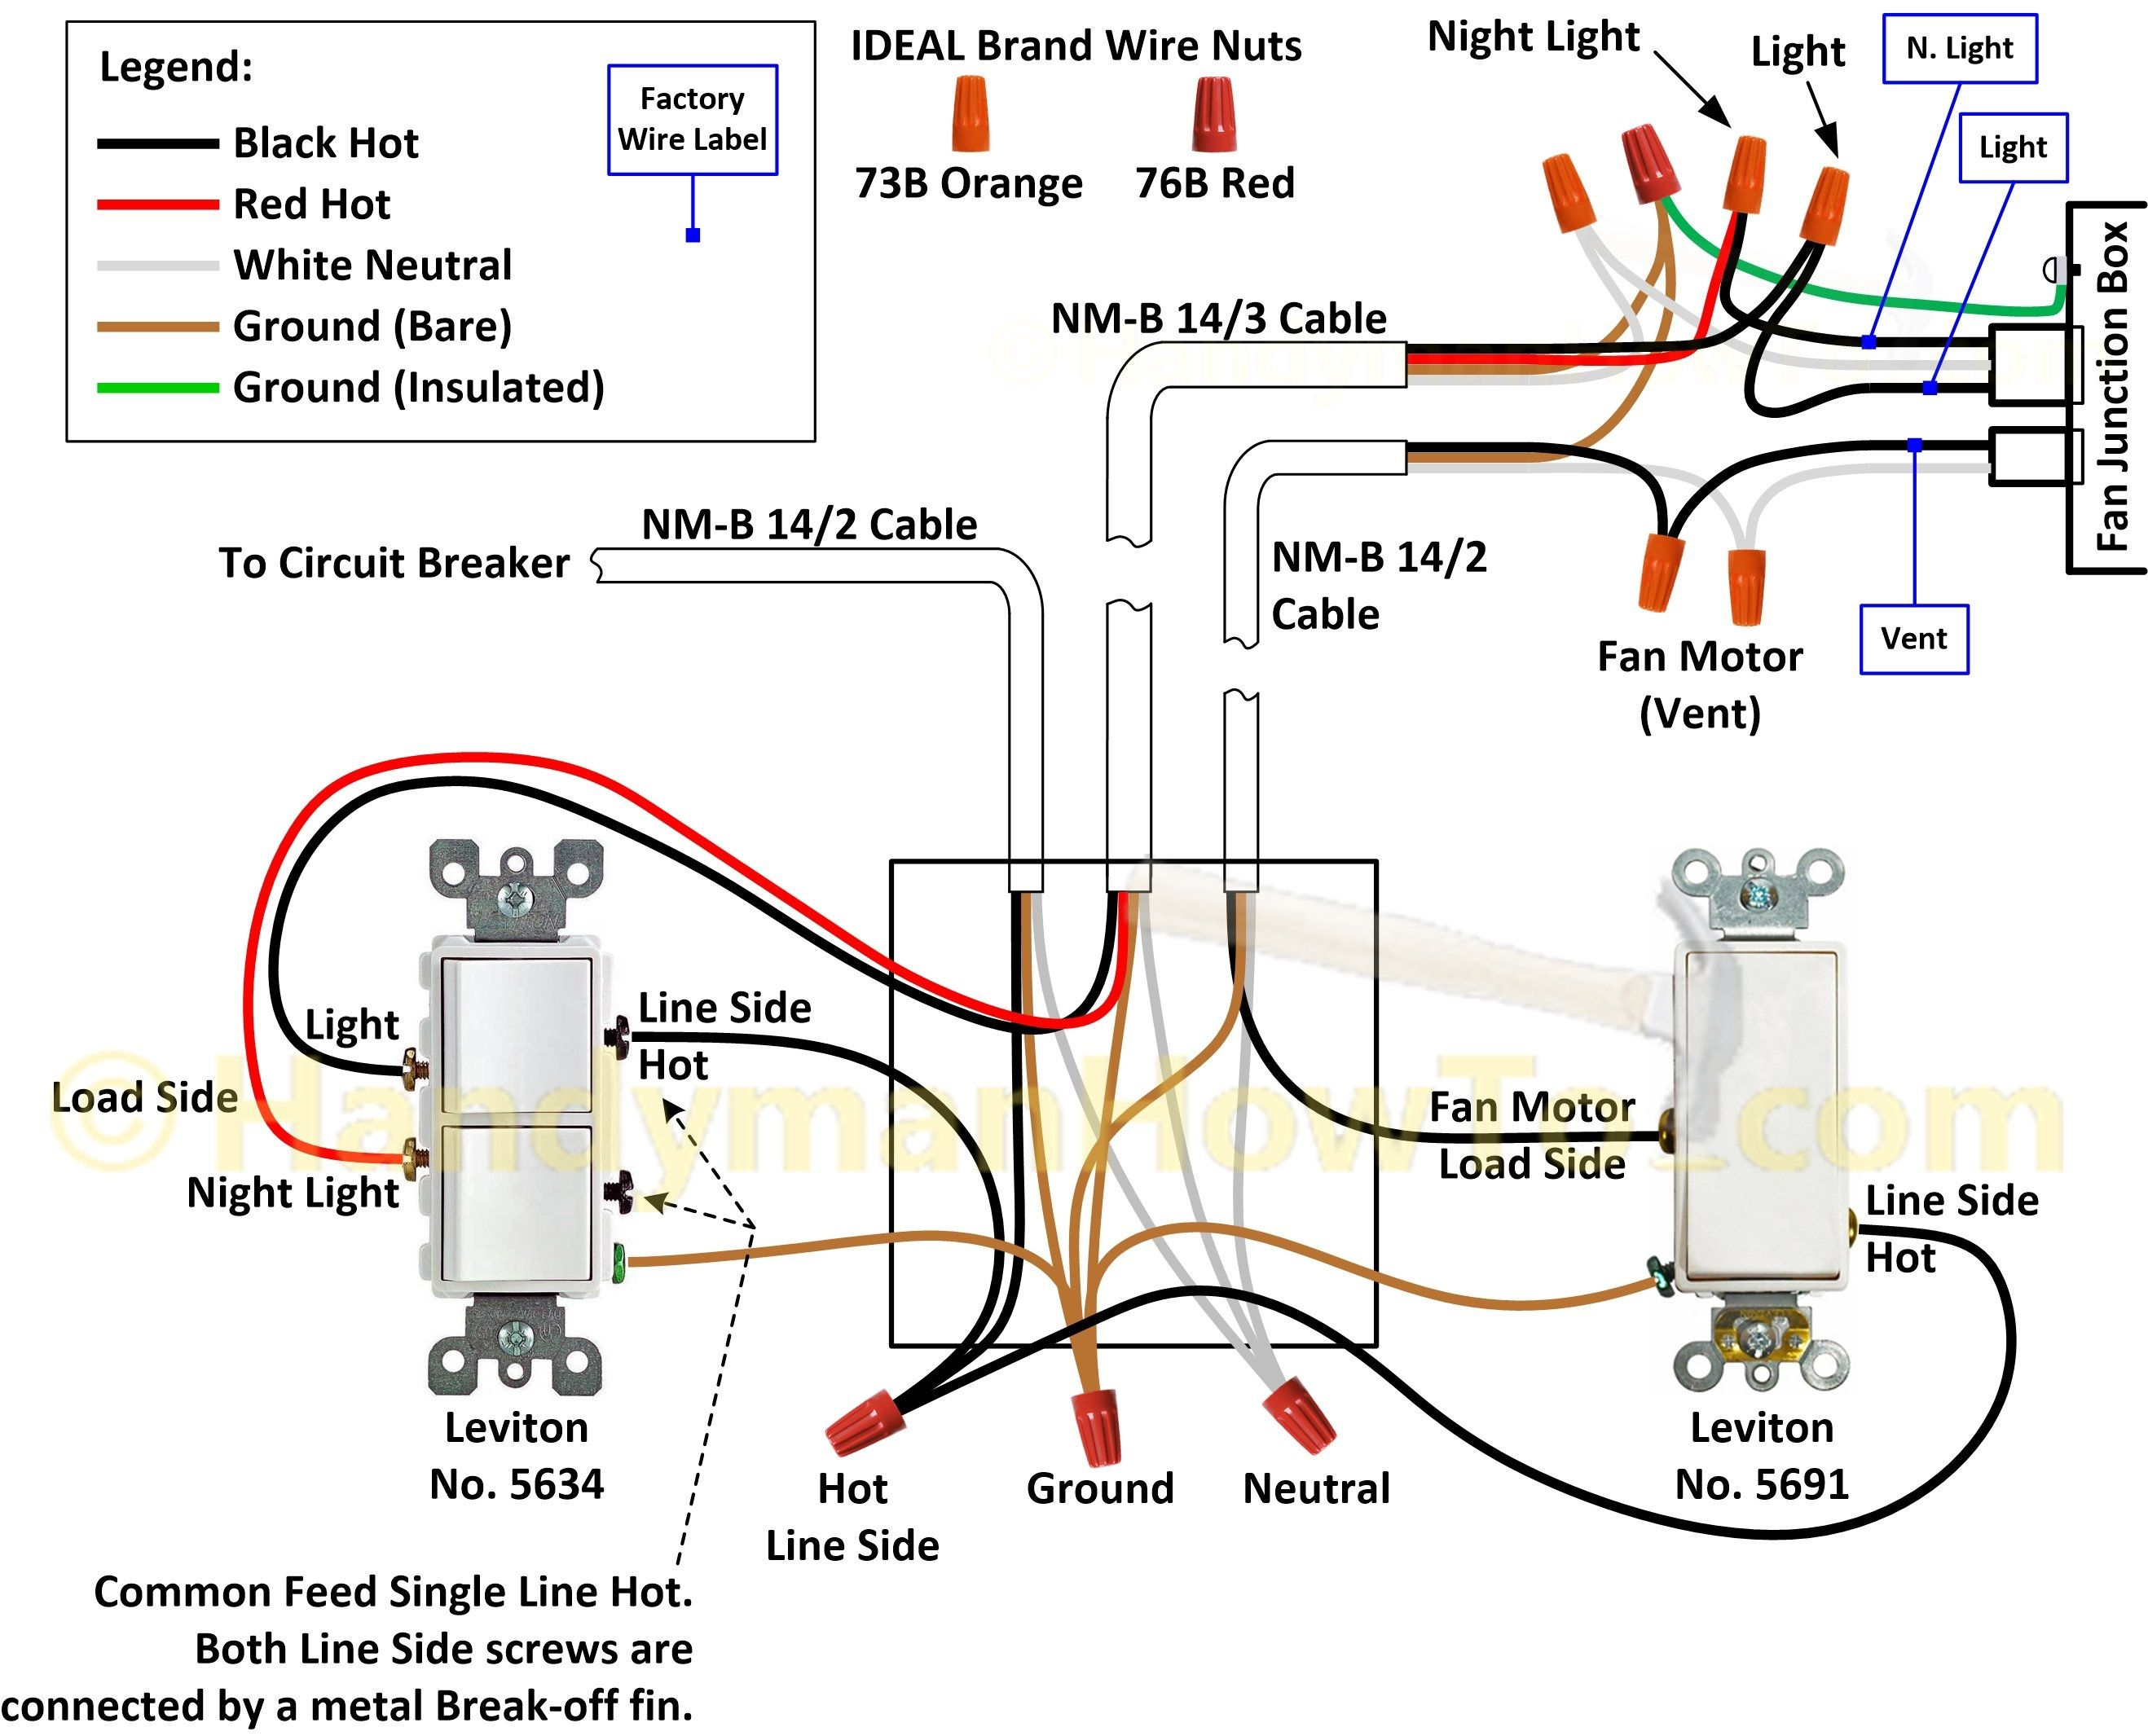 Bathroom Light Fan Switch Wiring Diagram Schematics Diagrams M151 A Exhaust U2022 Rh Autonomia Co Bath Heater